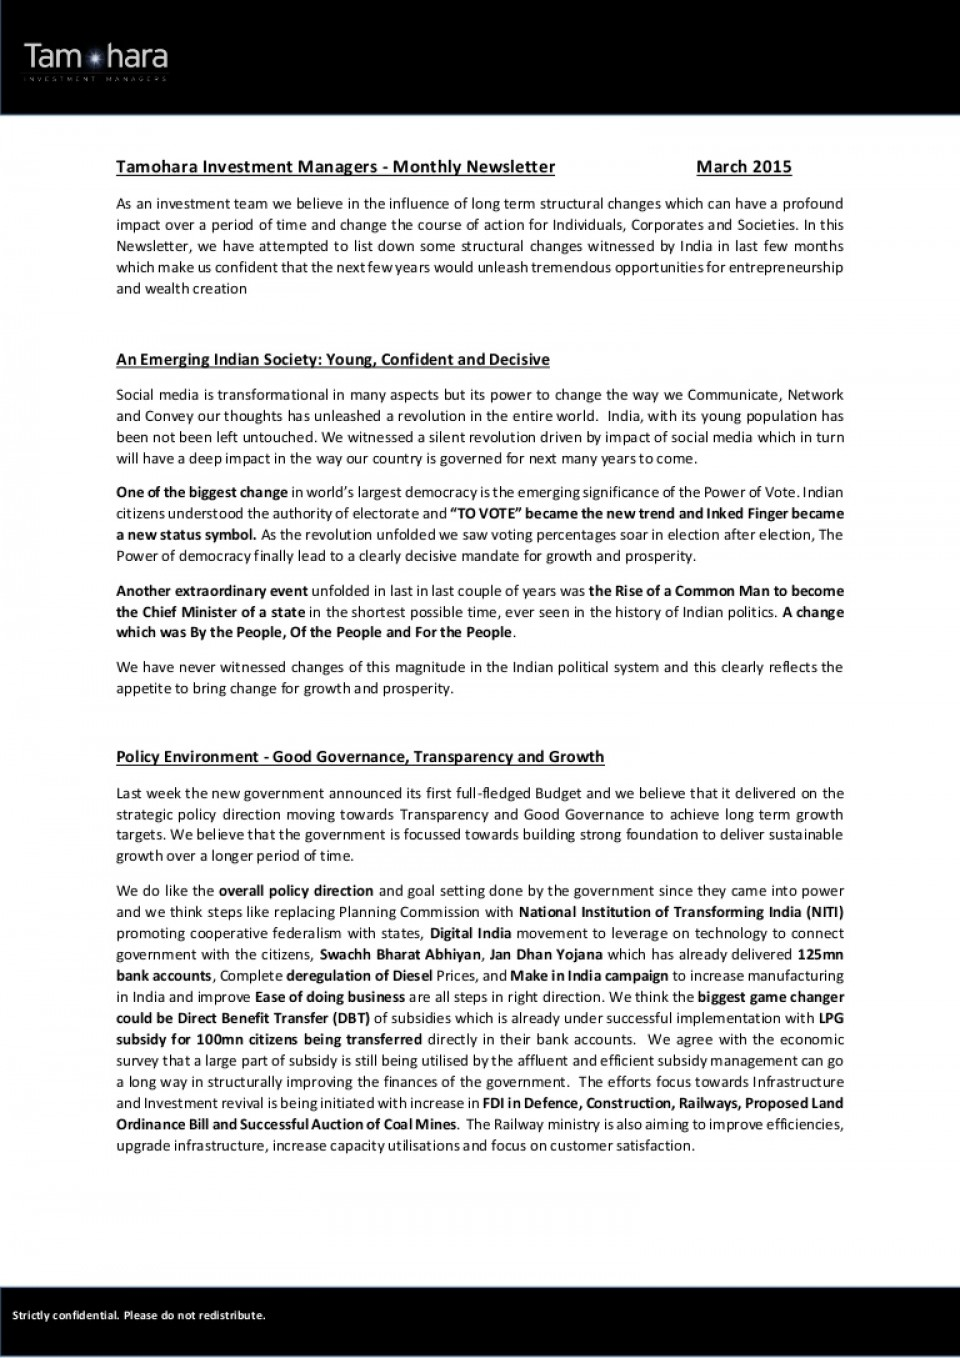 013 Essay Example Tamoharainvestmentnewsletter Mar2015 Conversion Gate01 Thumbnail How To Make Outstanding A Longer Paper With Periods Words Seem 960